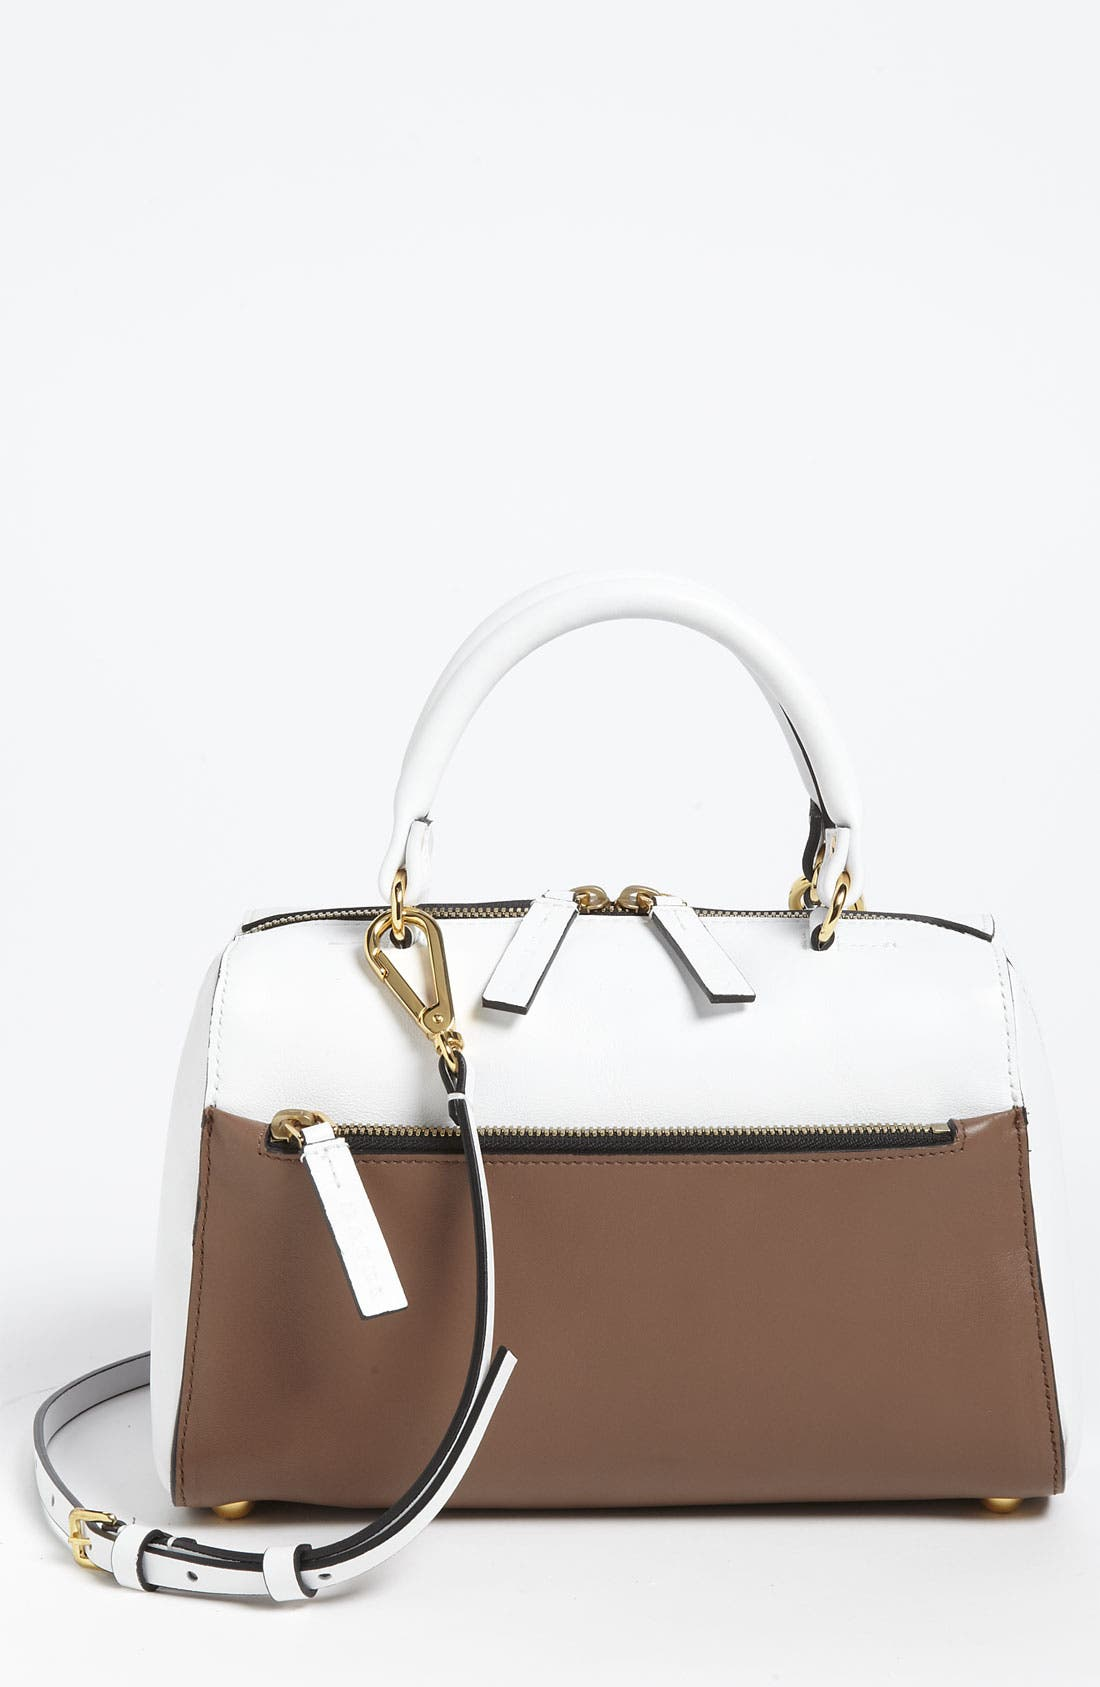 Alternate Image 1 Selected - Marni 'Mini' Crossbody Duffel Bag